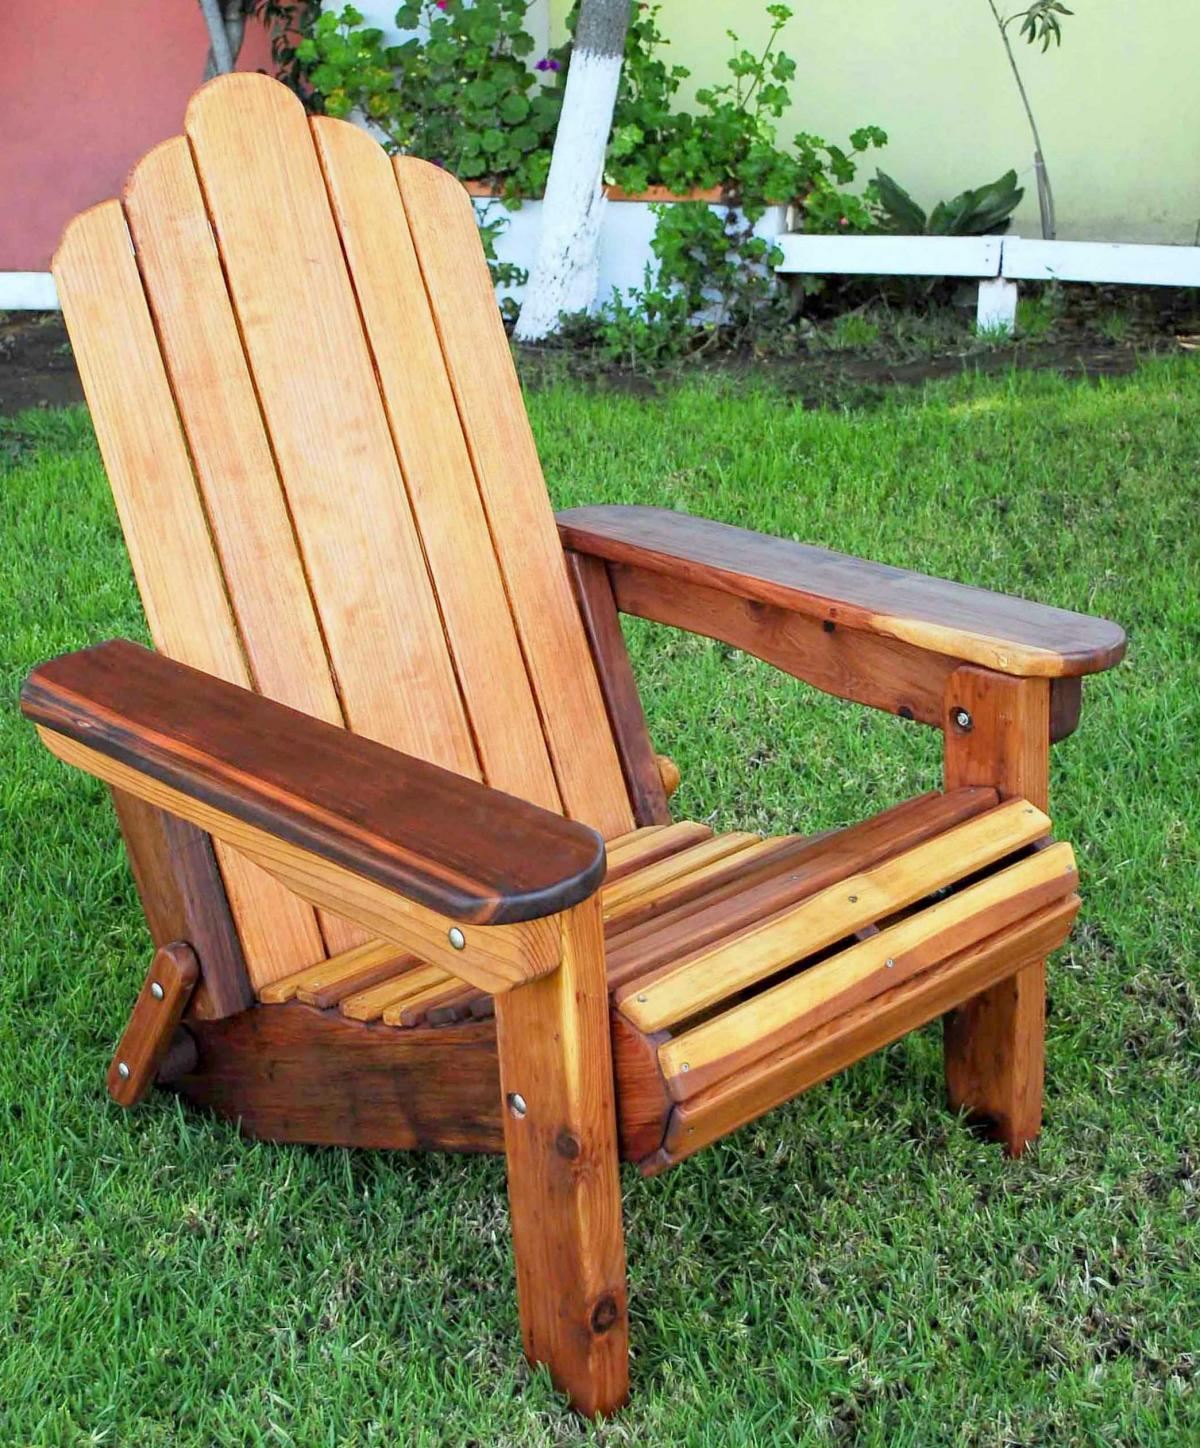 Wood Adirondack Chairs Adirondack Wooden Folding Chair